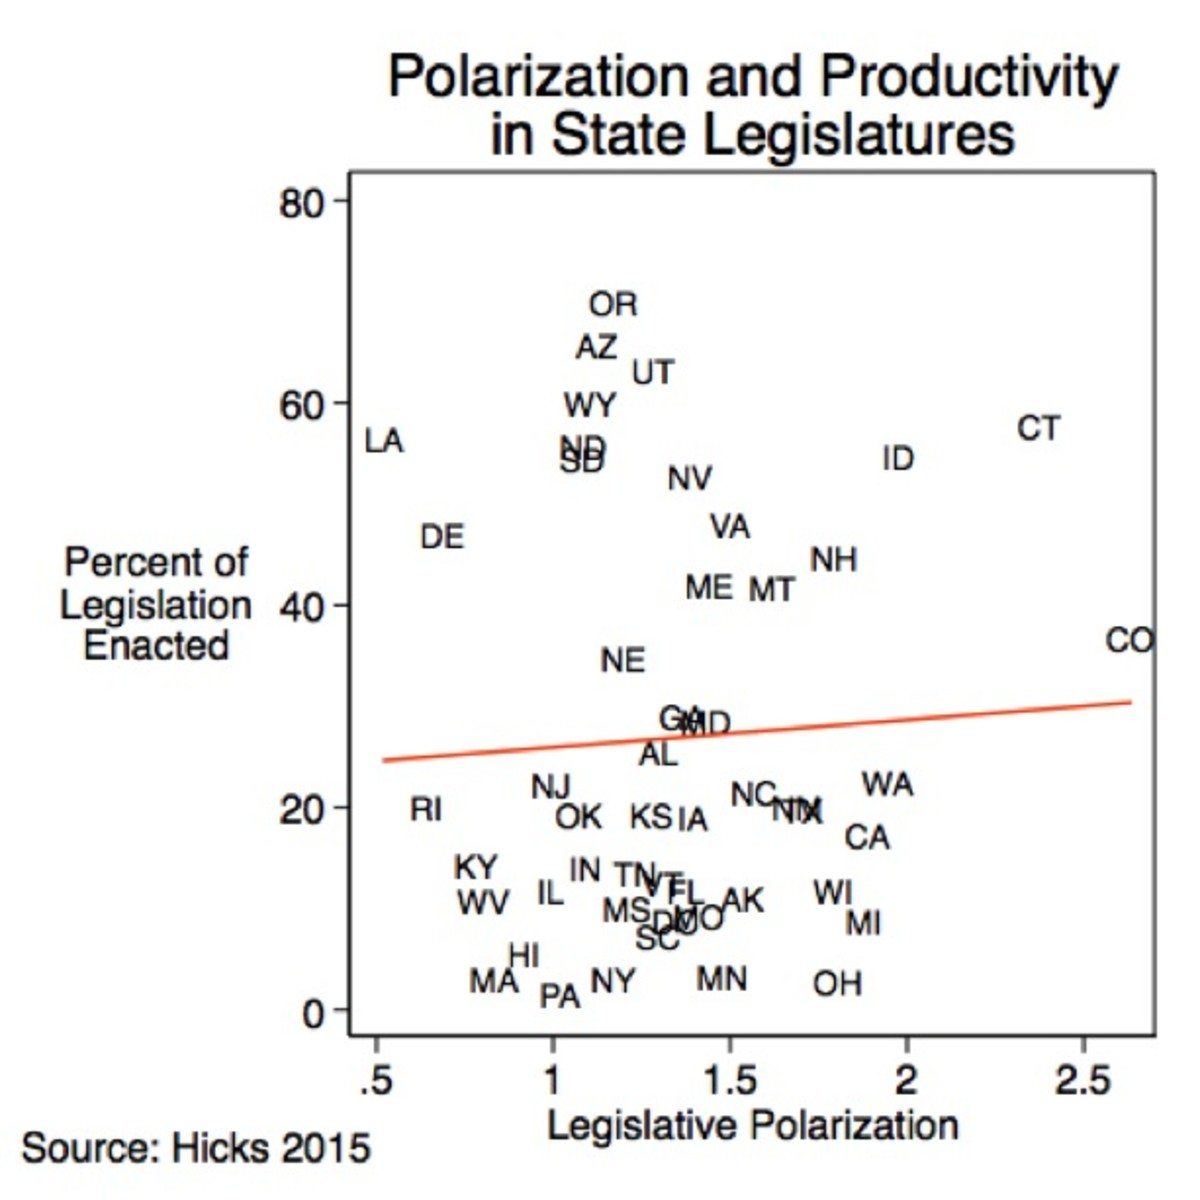 Polarization and Productivity in State Legislatures